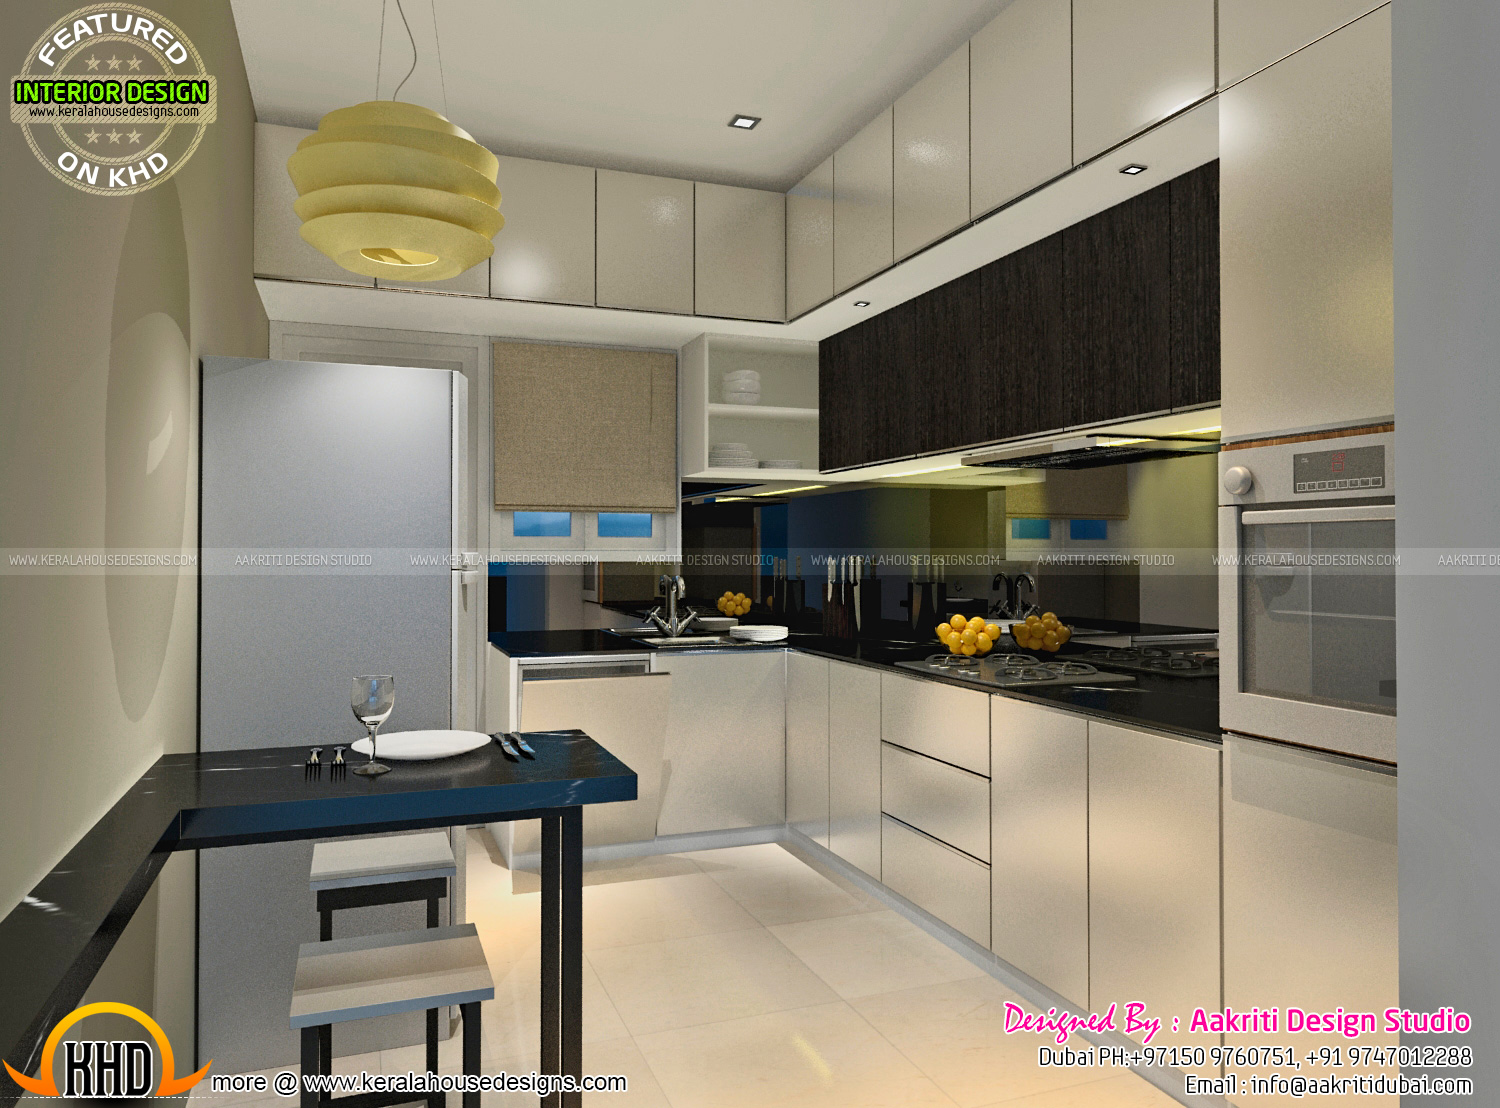 Dining kitchen wash area interior kerala home design for Kitchen room interior design